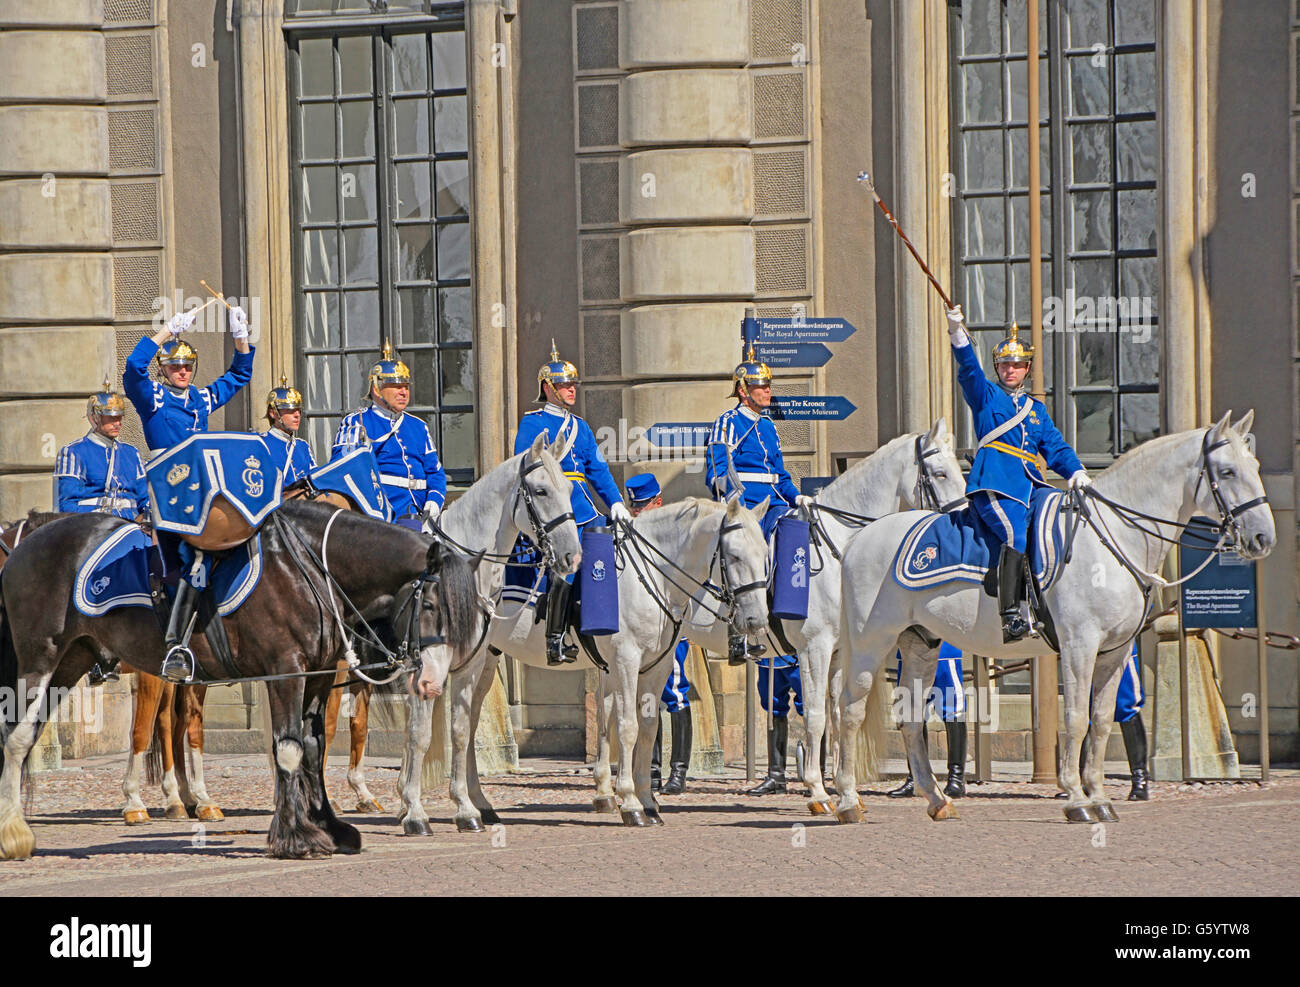 Changing of the Guards at The Royal Palace in Stockholm, Sweden. - Stock Image